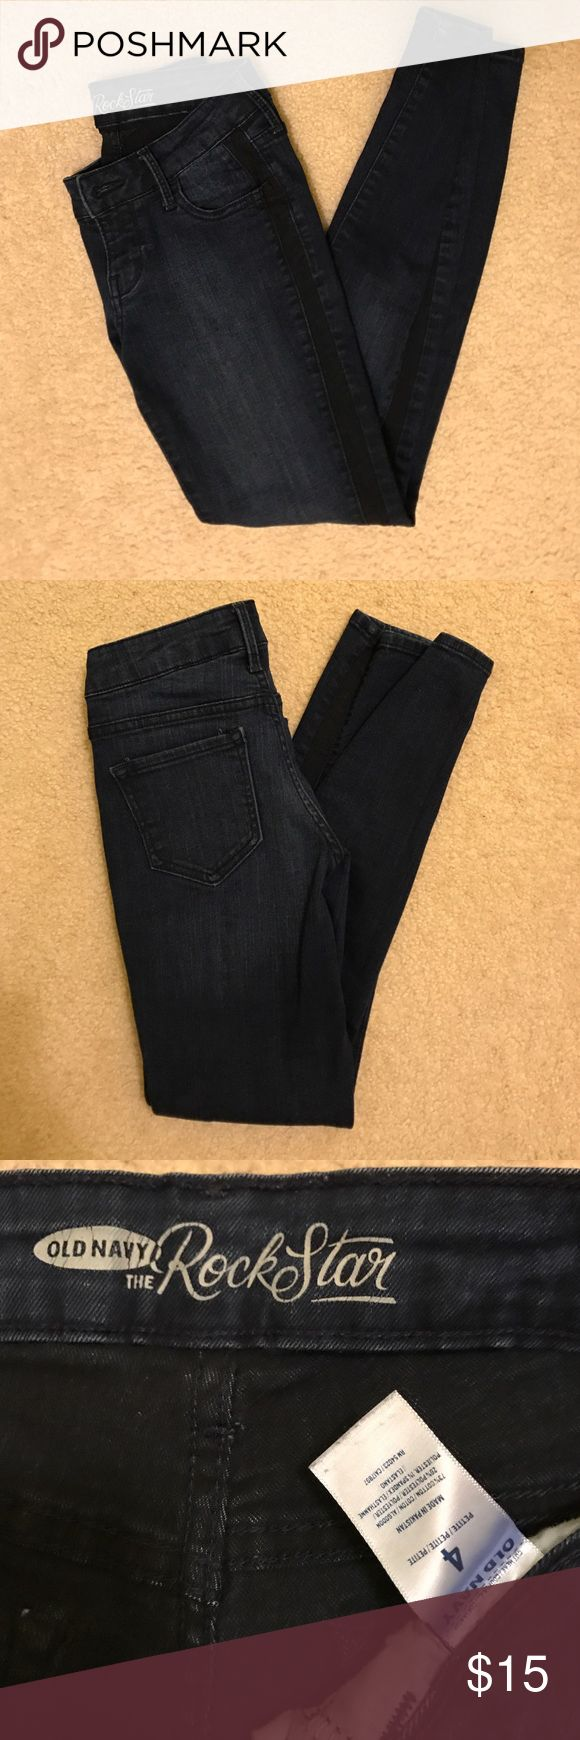 Old navy dark wash black stripe rockstar jeans This is a dark wash skinny rockstar Jean, it is a size 4, 73% cotton 26% polyester 1% spandex Old Navy Jeans Skinny